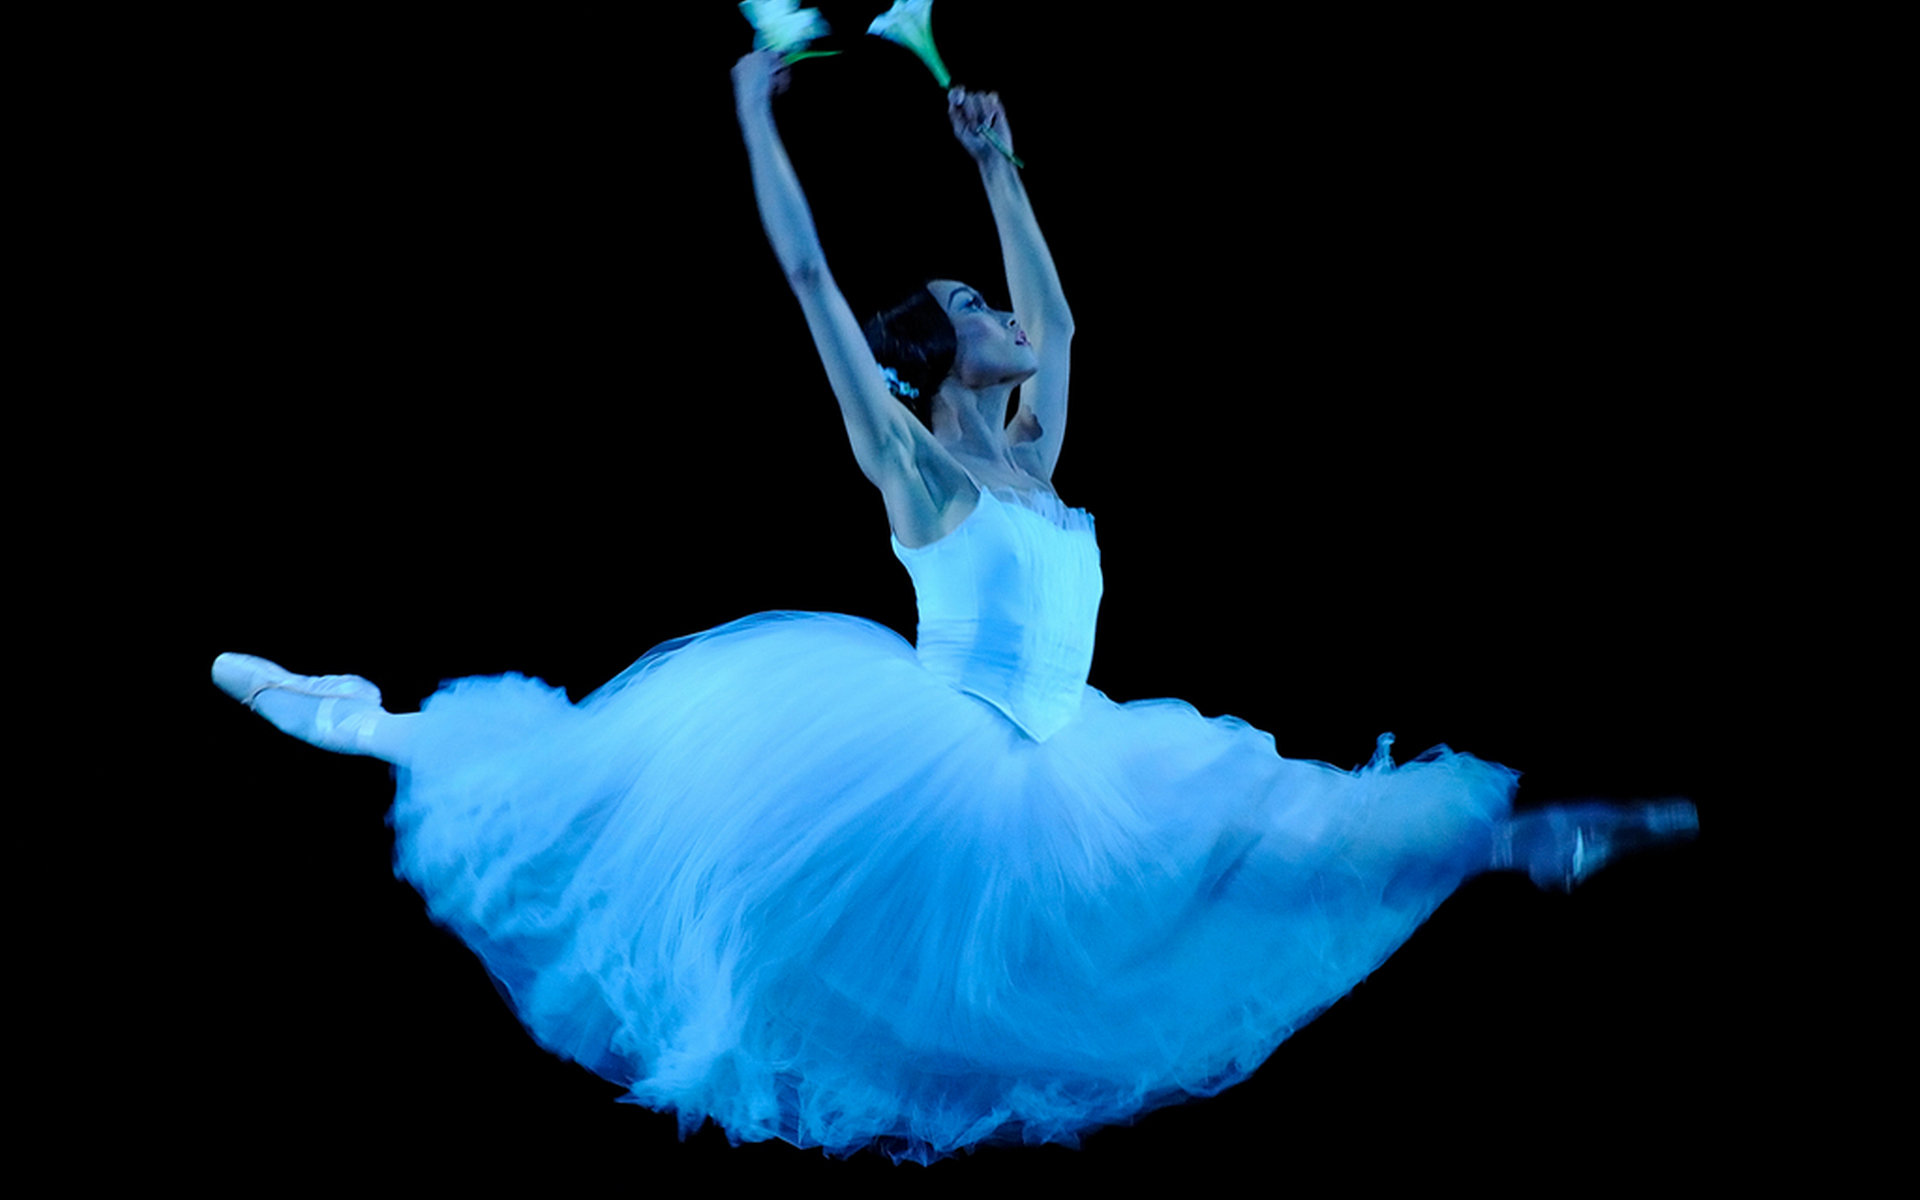 High Resolution Ballet Hd 1920x1200 Wallpaper Id 445220 For Desktop